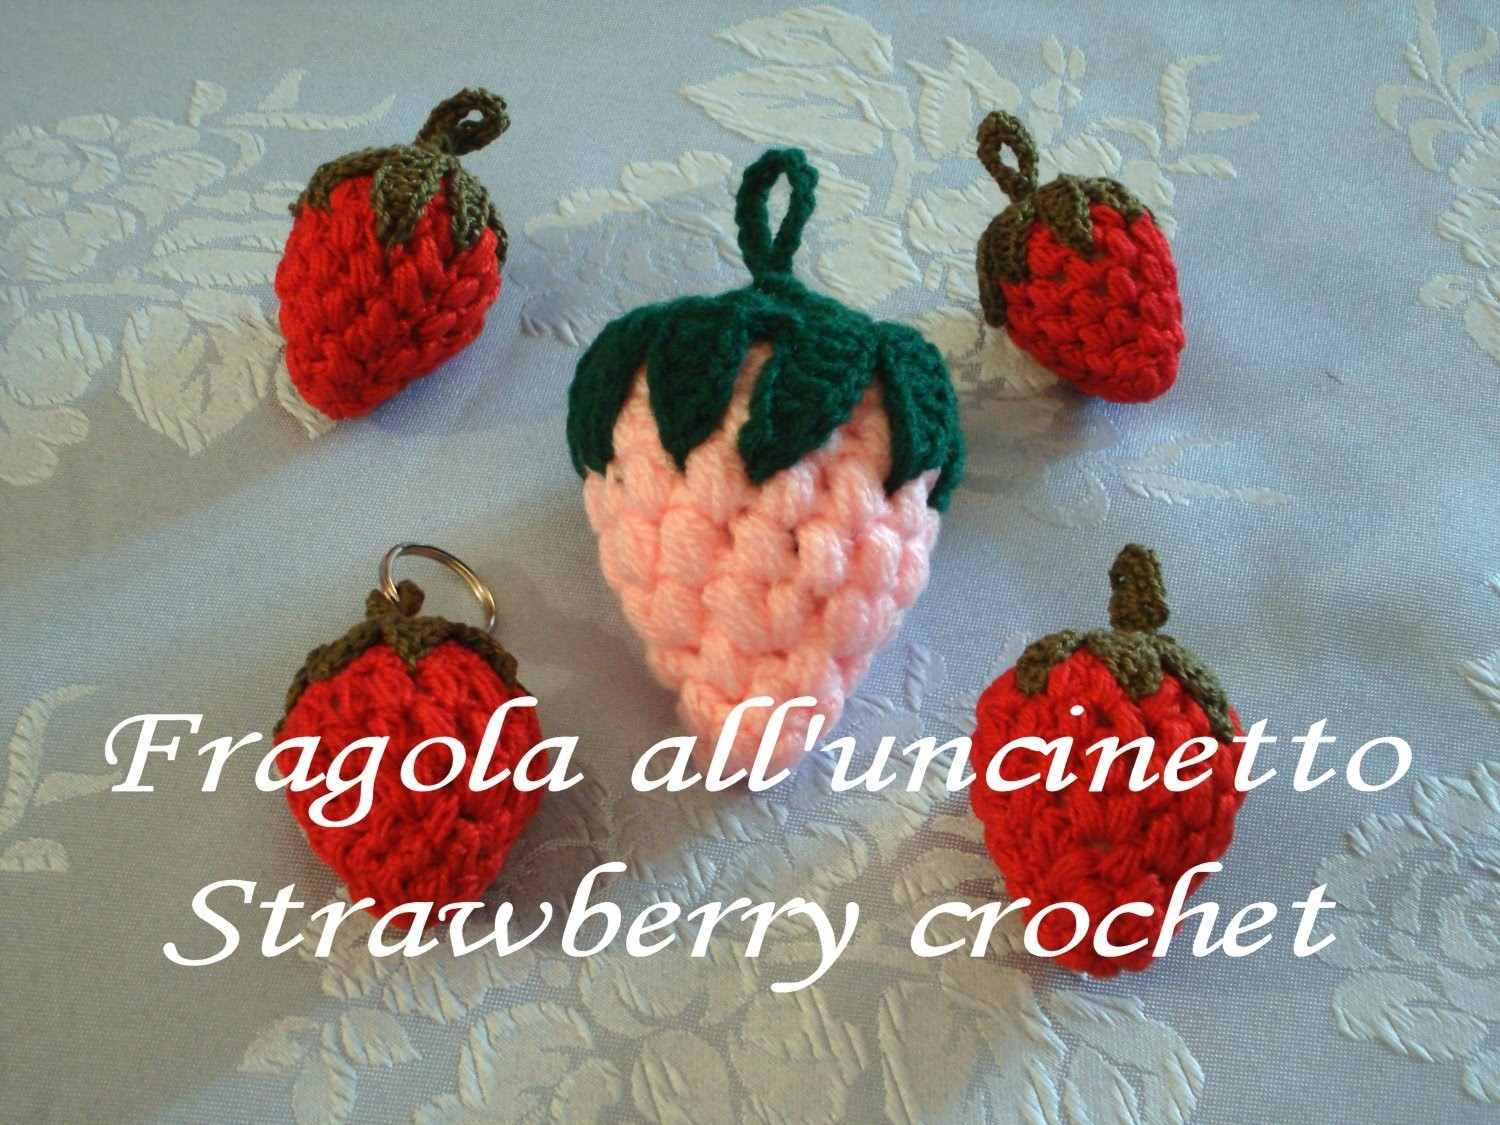 Fragola uncinetto strawberry  crochet